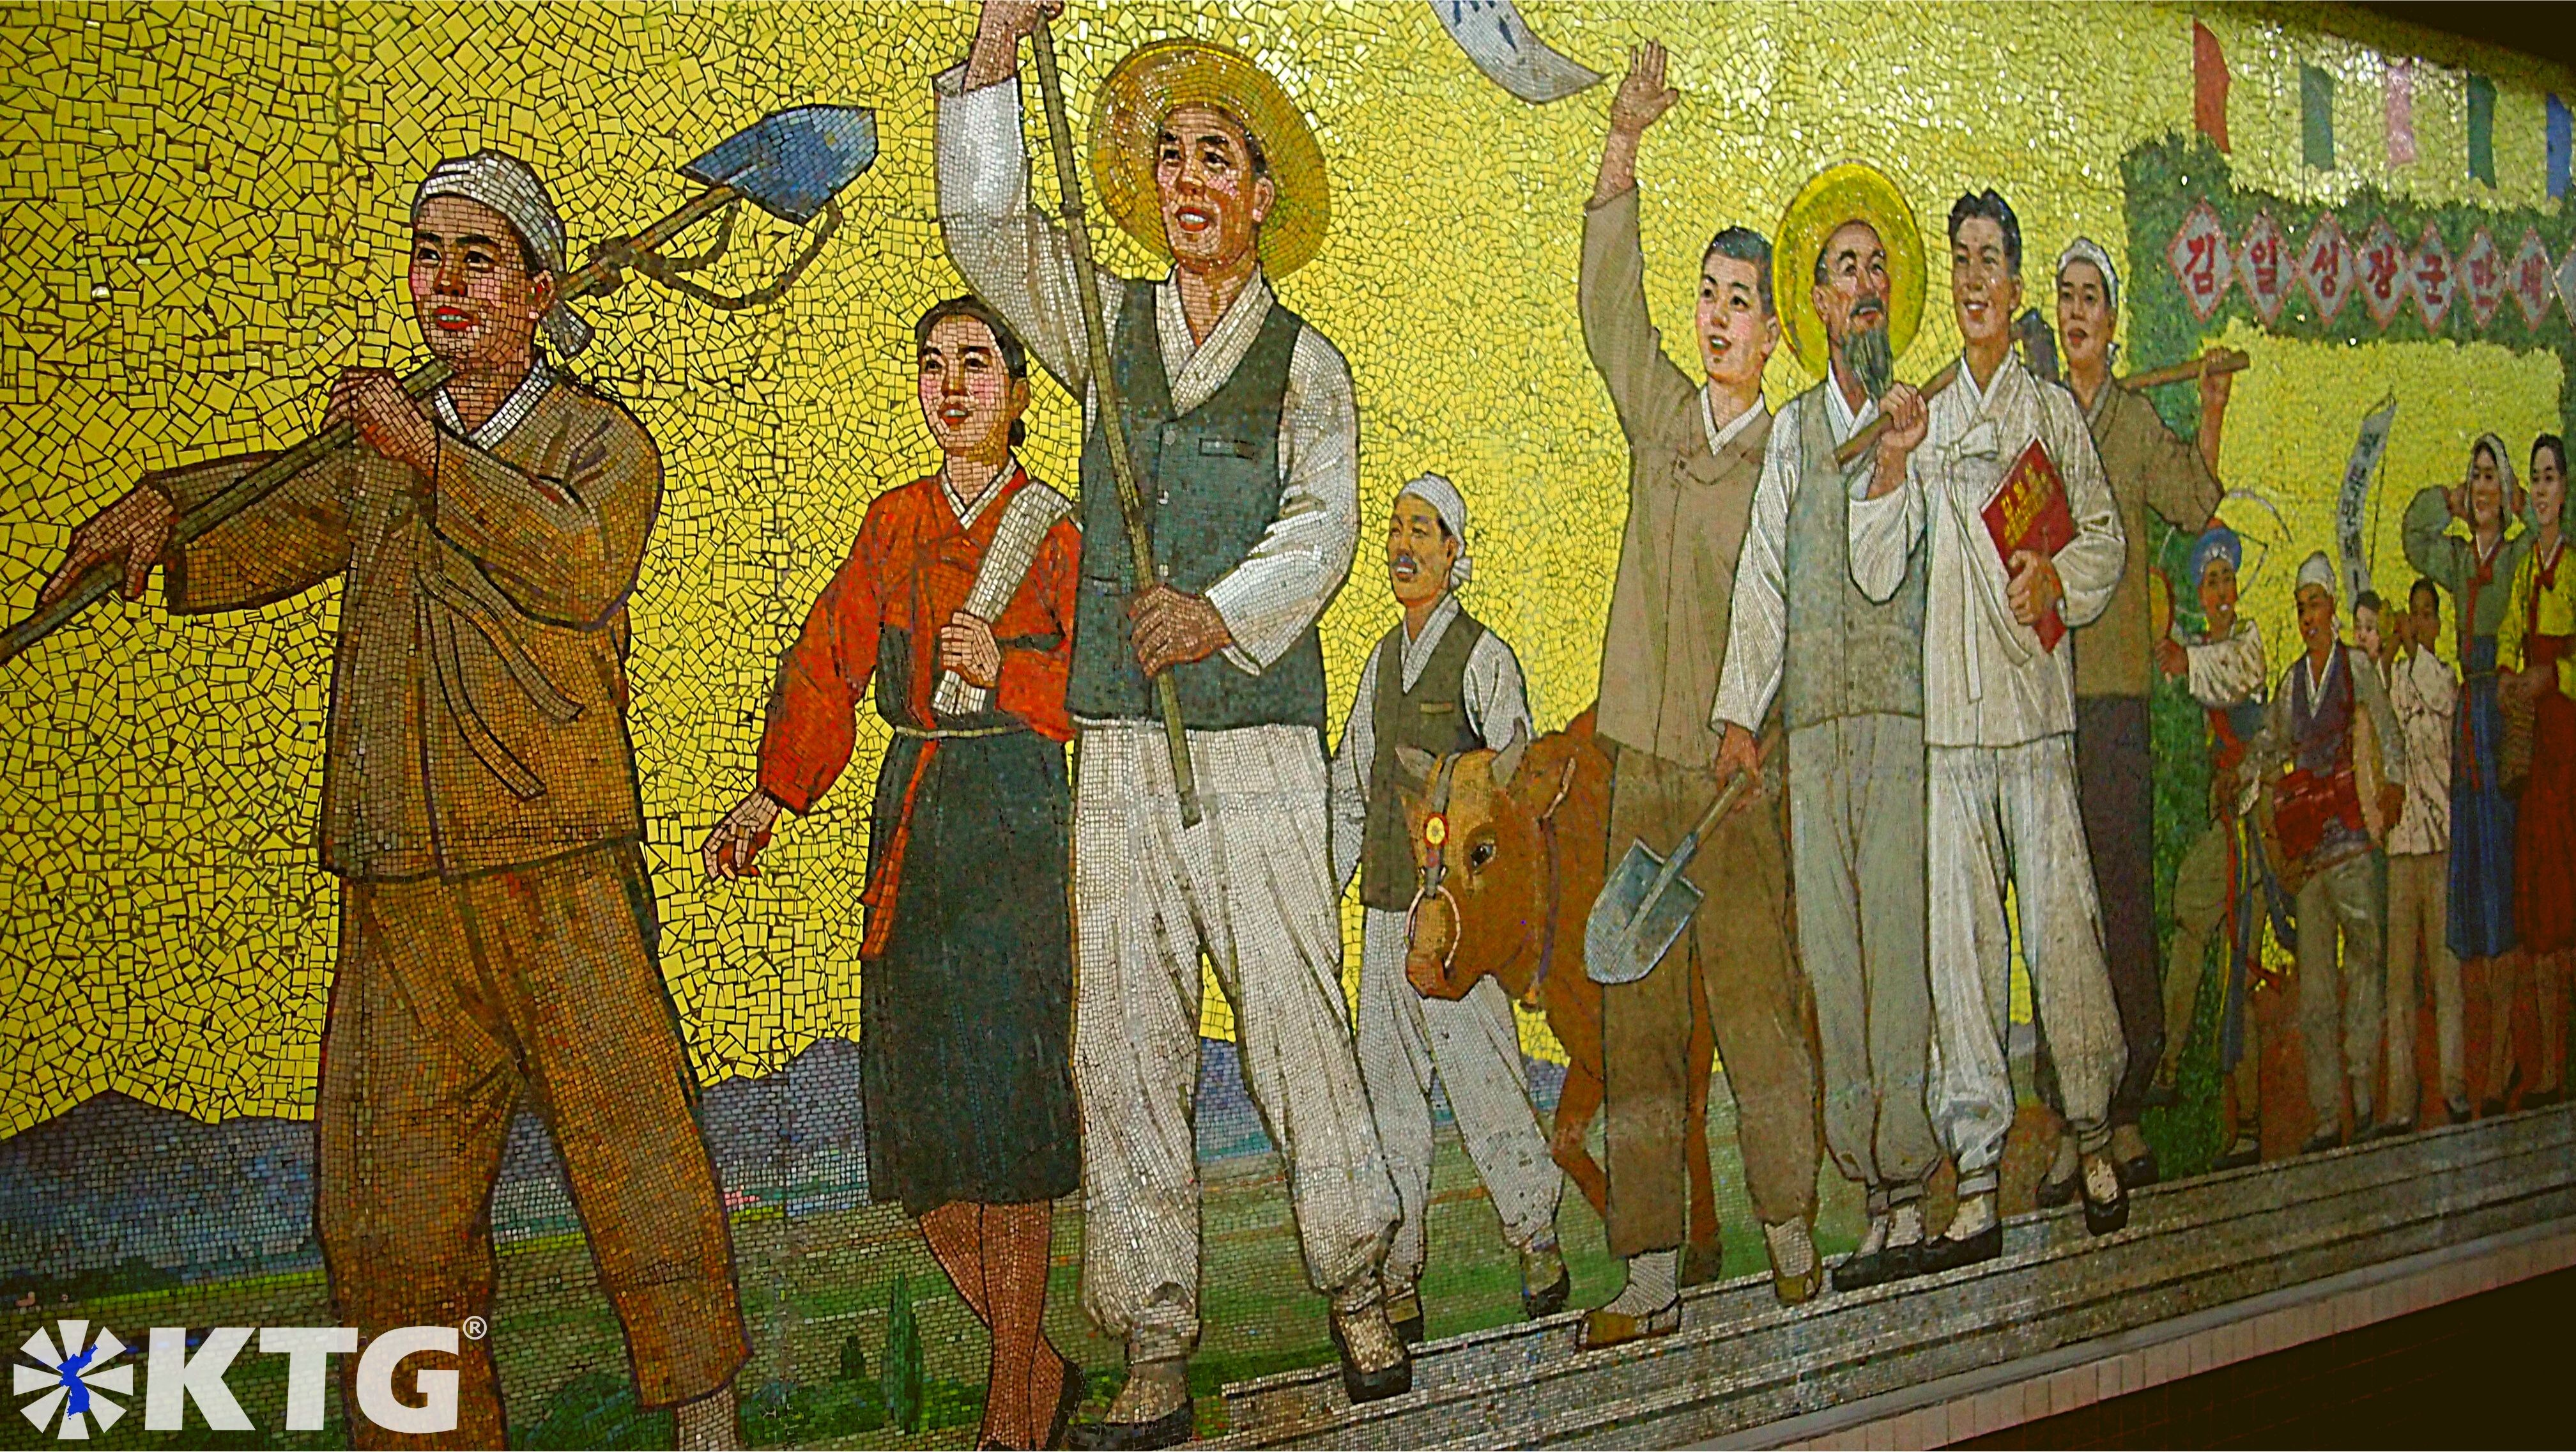 Farmers depicting in a mural in a Pyongyang metro station, DPRK. Picture of North Korea taken by KTG Tours